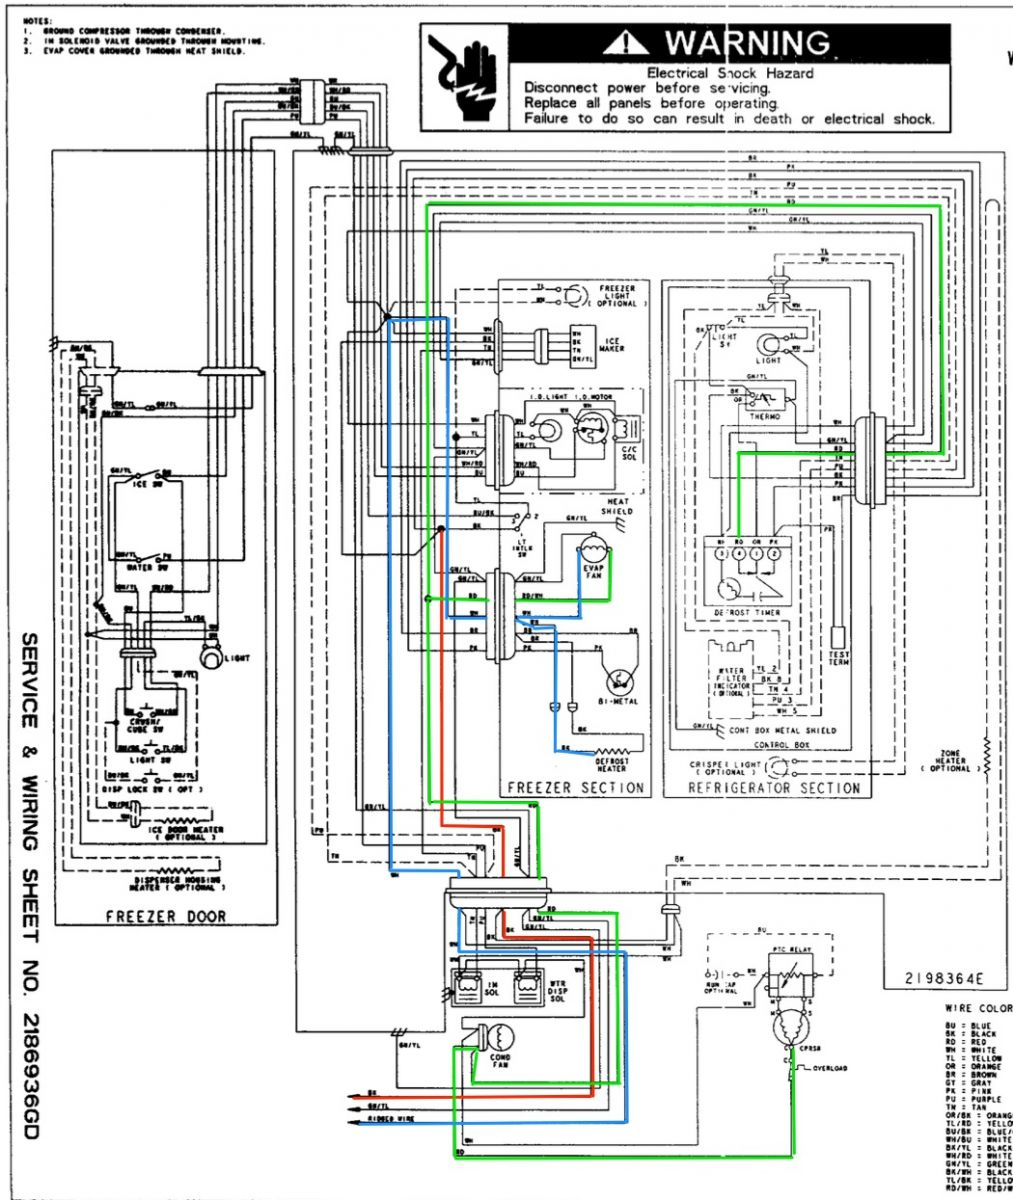 Toaster Oven Switch Diagram On Schematic Diagrams For Ge Microwave Whirlpool Opinions About Wiring Ed25rfxfw01 Refrigerator The Rh Appliantology Org Gb2shdxtq Electric Dryer